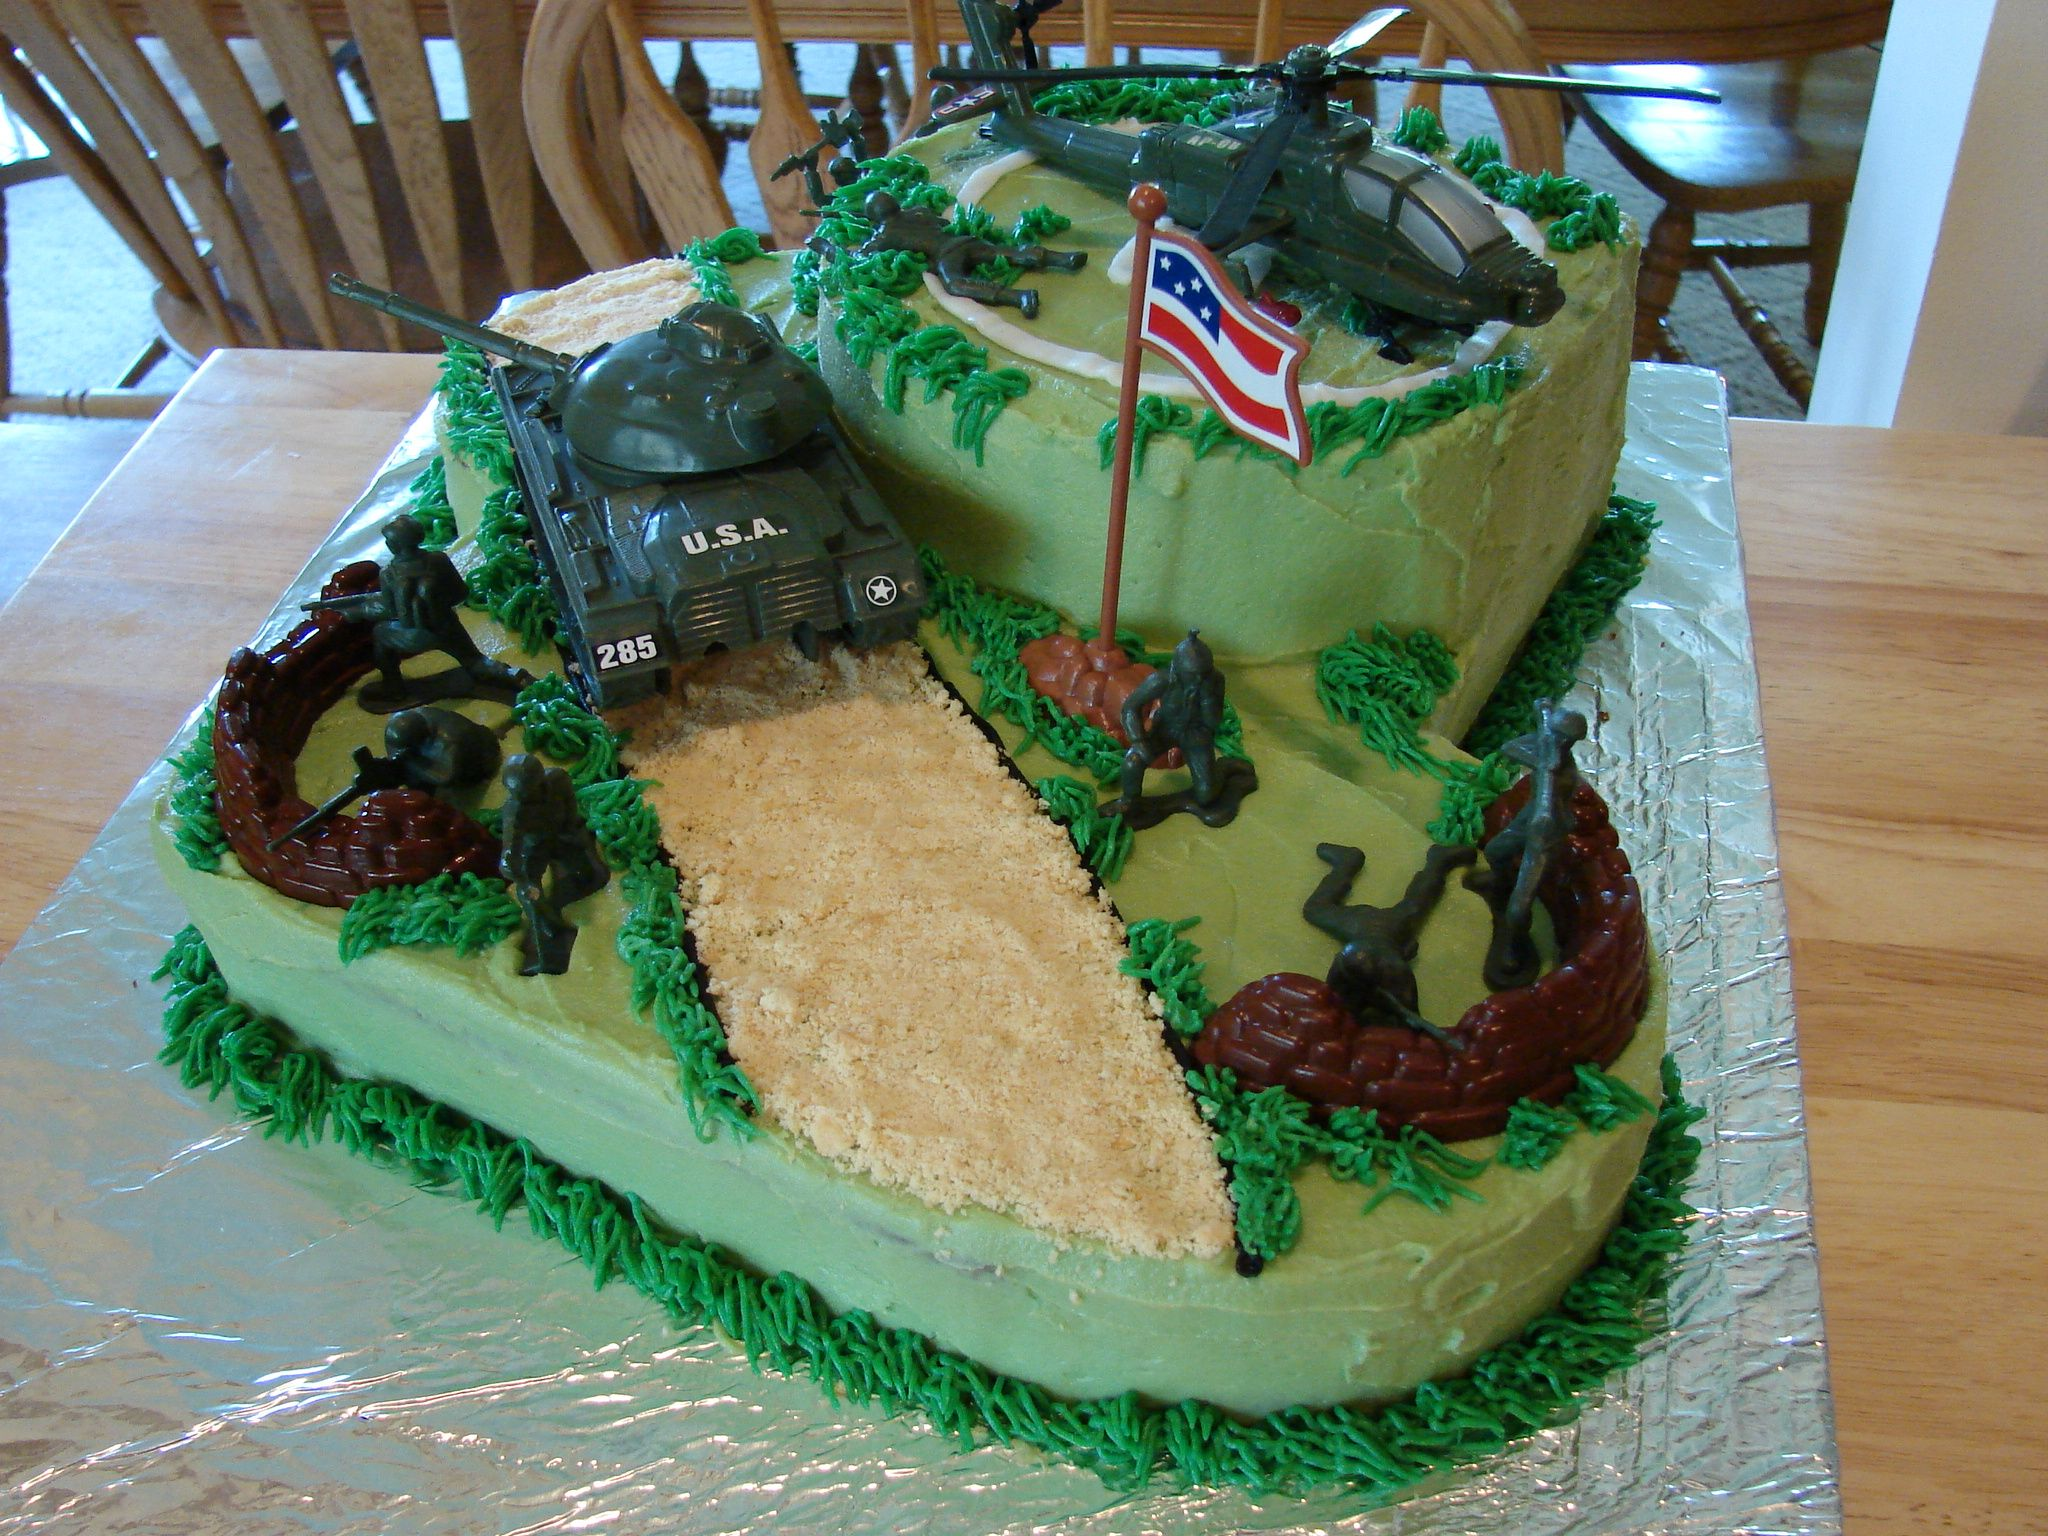 Army Cake Cake Decorating Pinterest Army cake Army and Cake